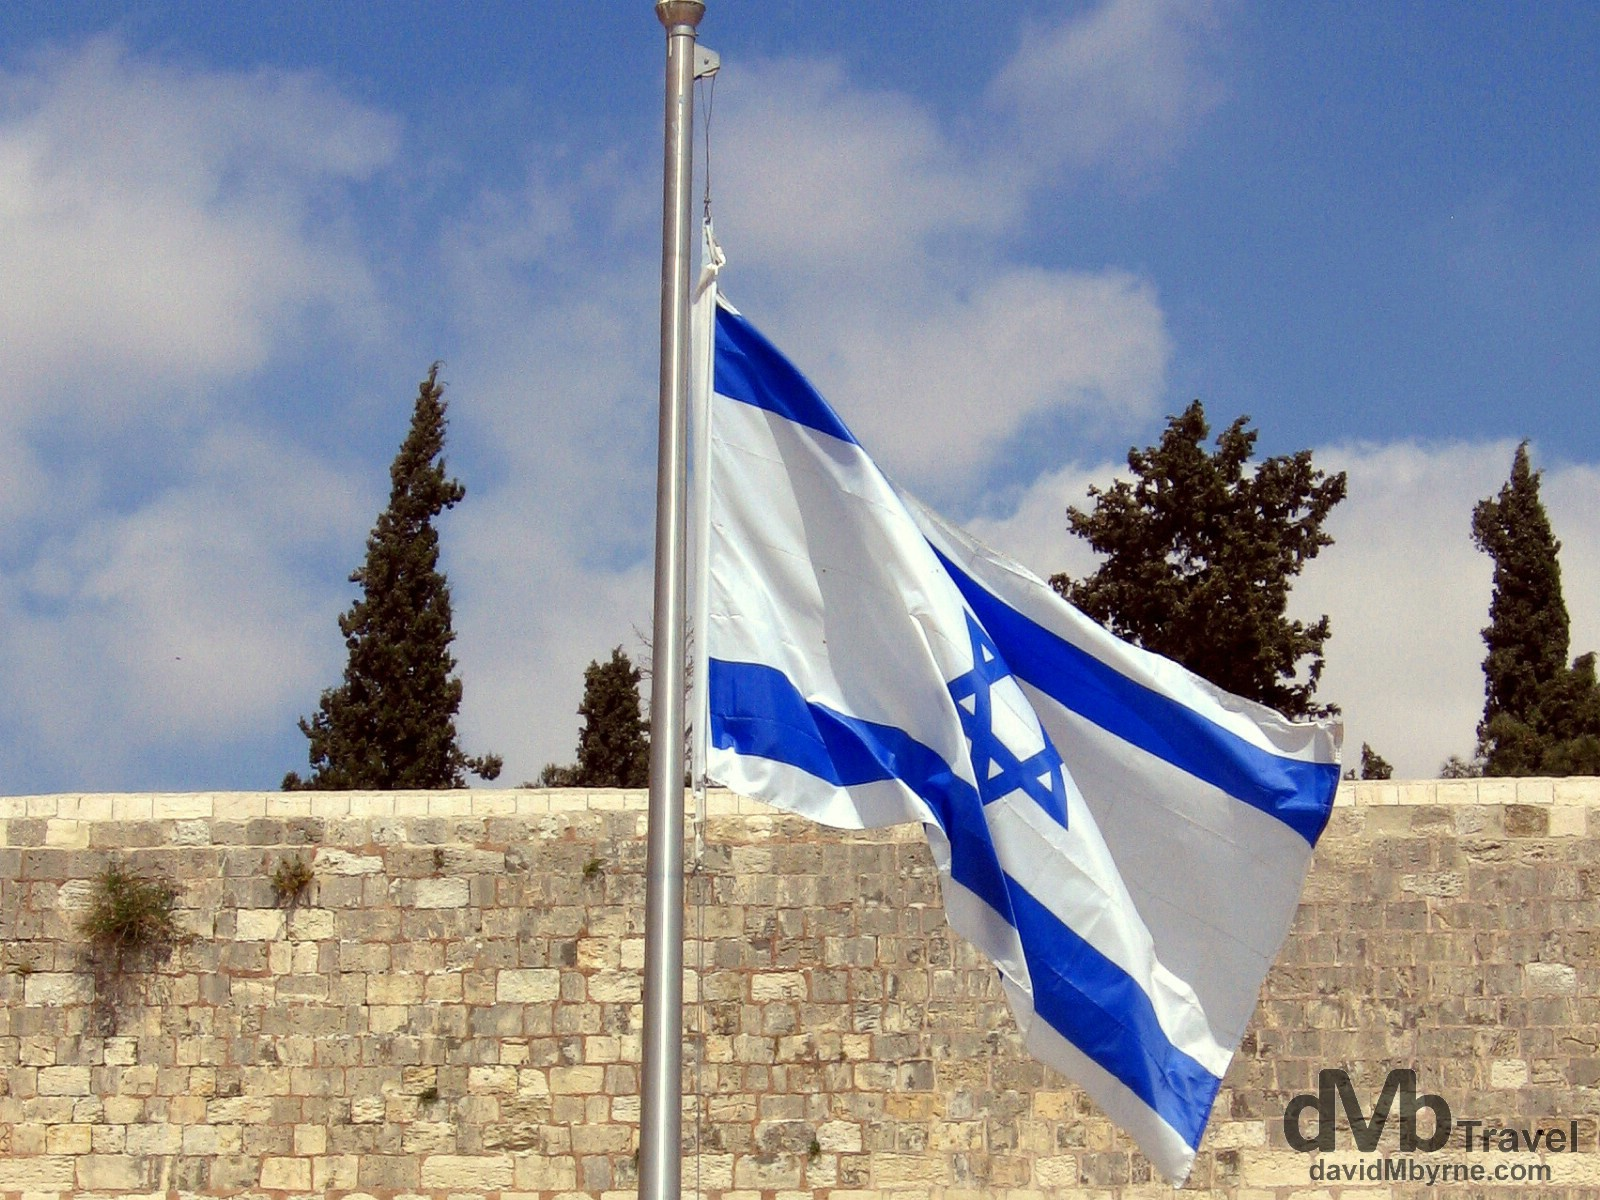 A Israeli flag flying near the Western / Wailing Wall in the Old City of Jerusalem, Israel. May 2, 2008.